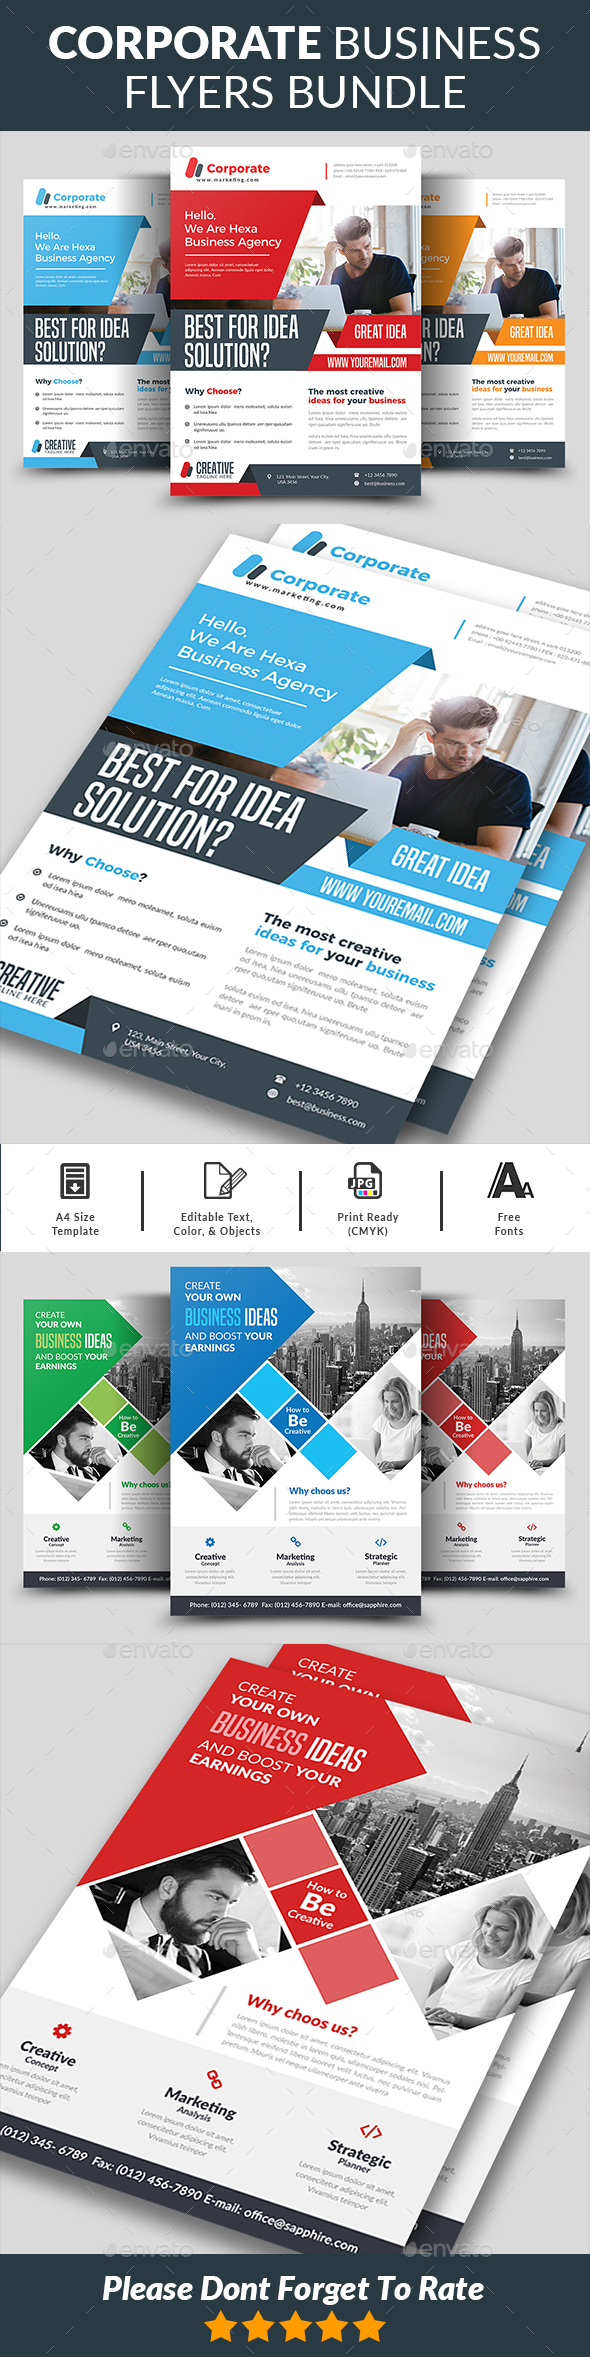 Corporate Business Flyers Bundle - Corporate Flyers